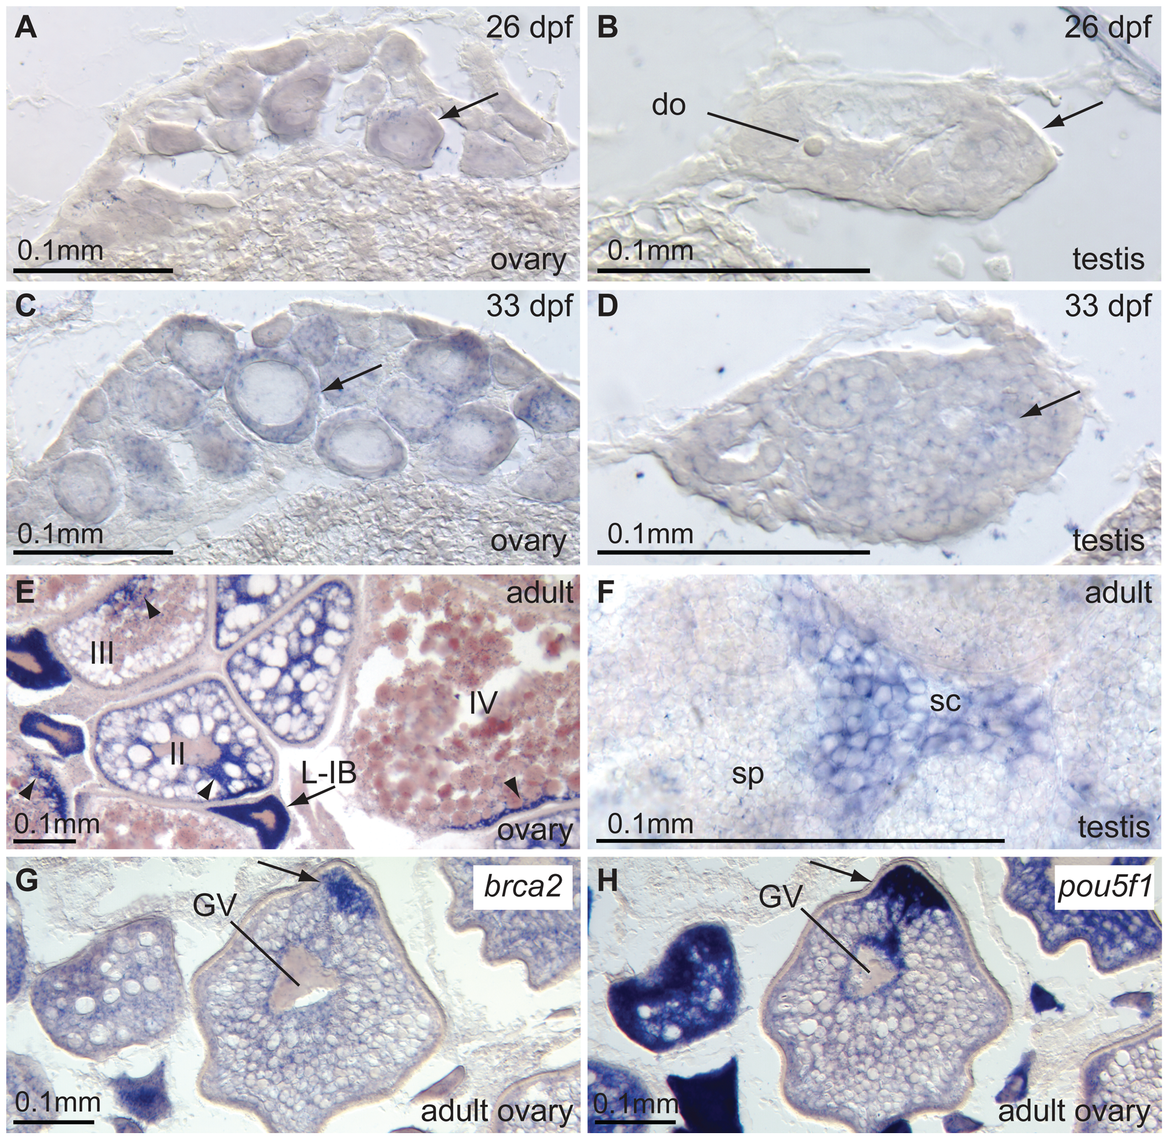 Expression of <i>brca2</i> in wild-type gonads.